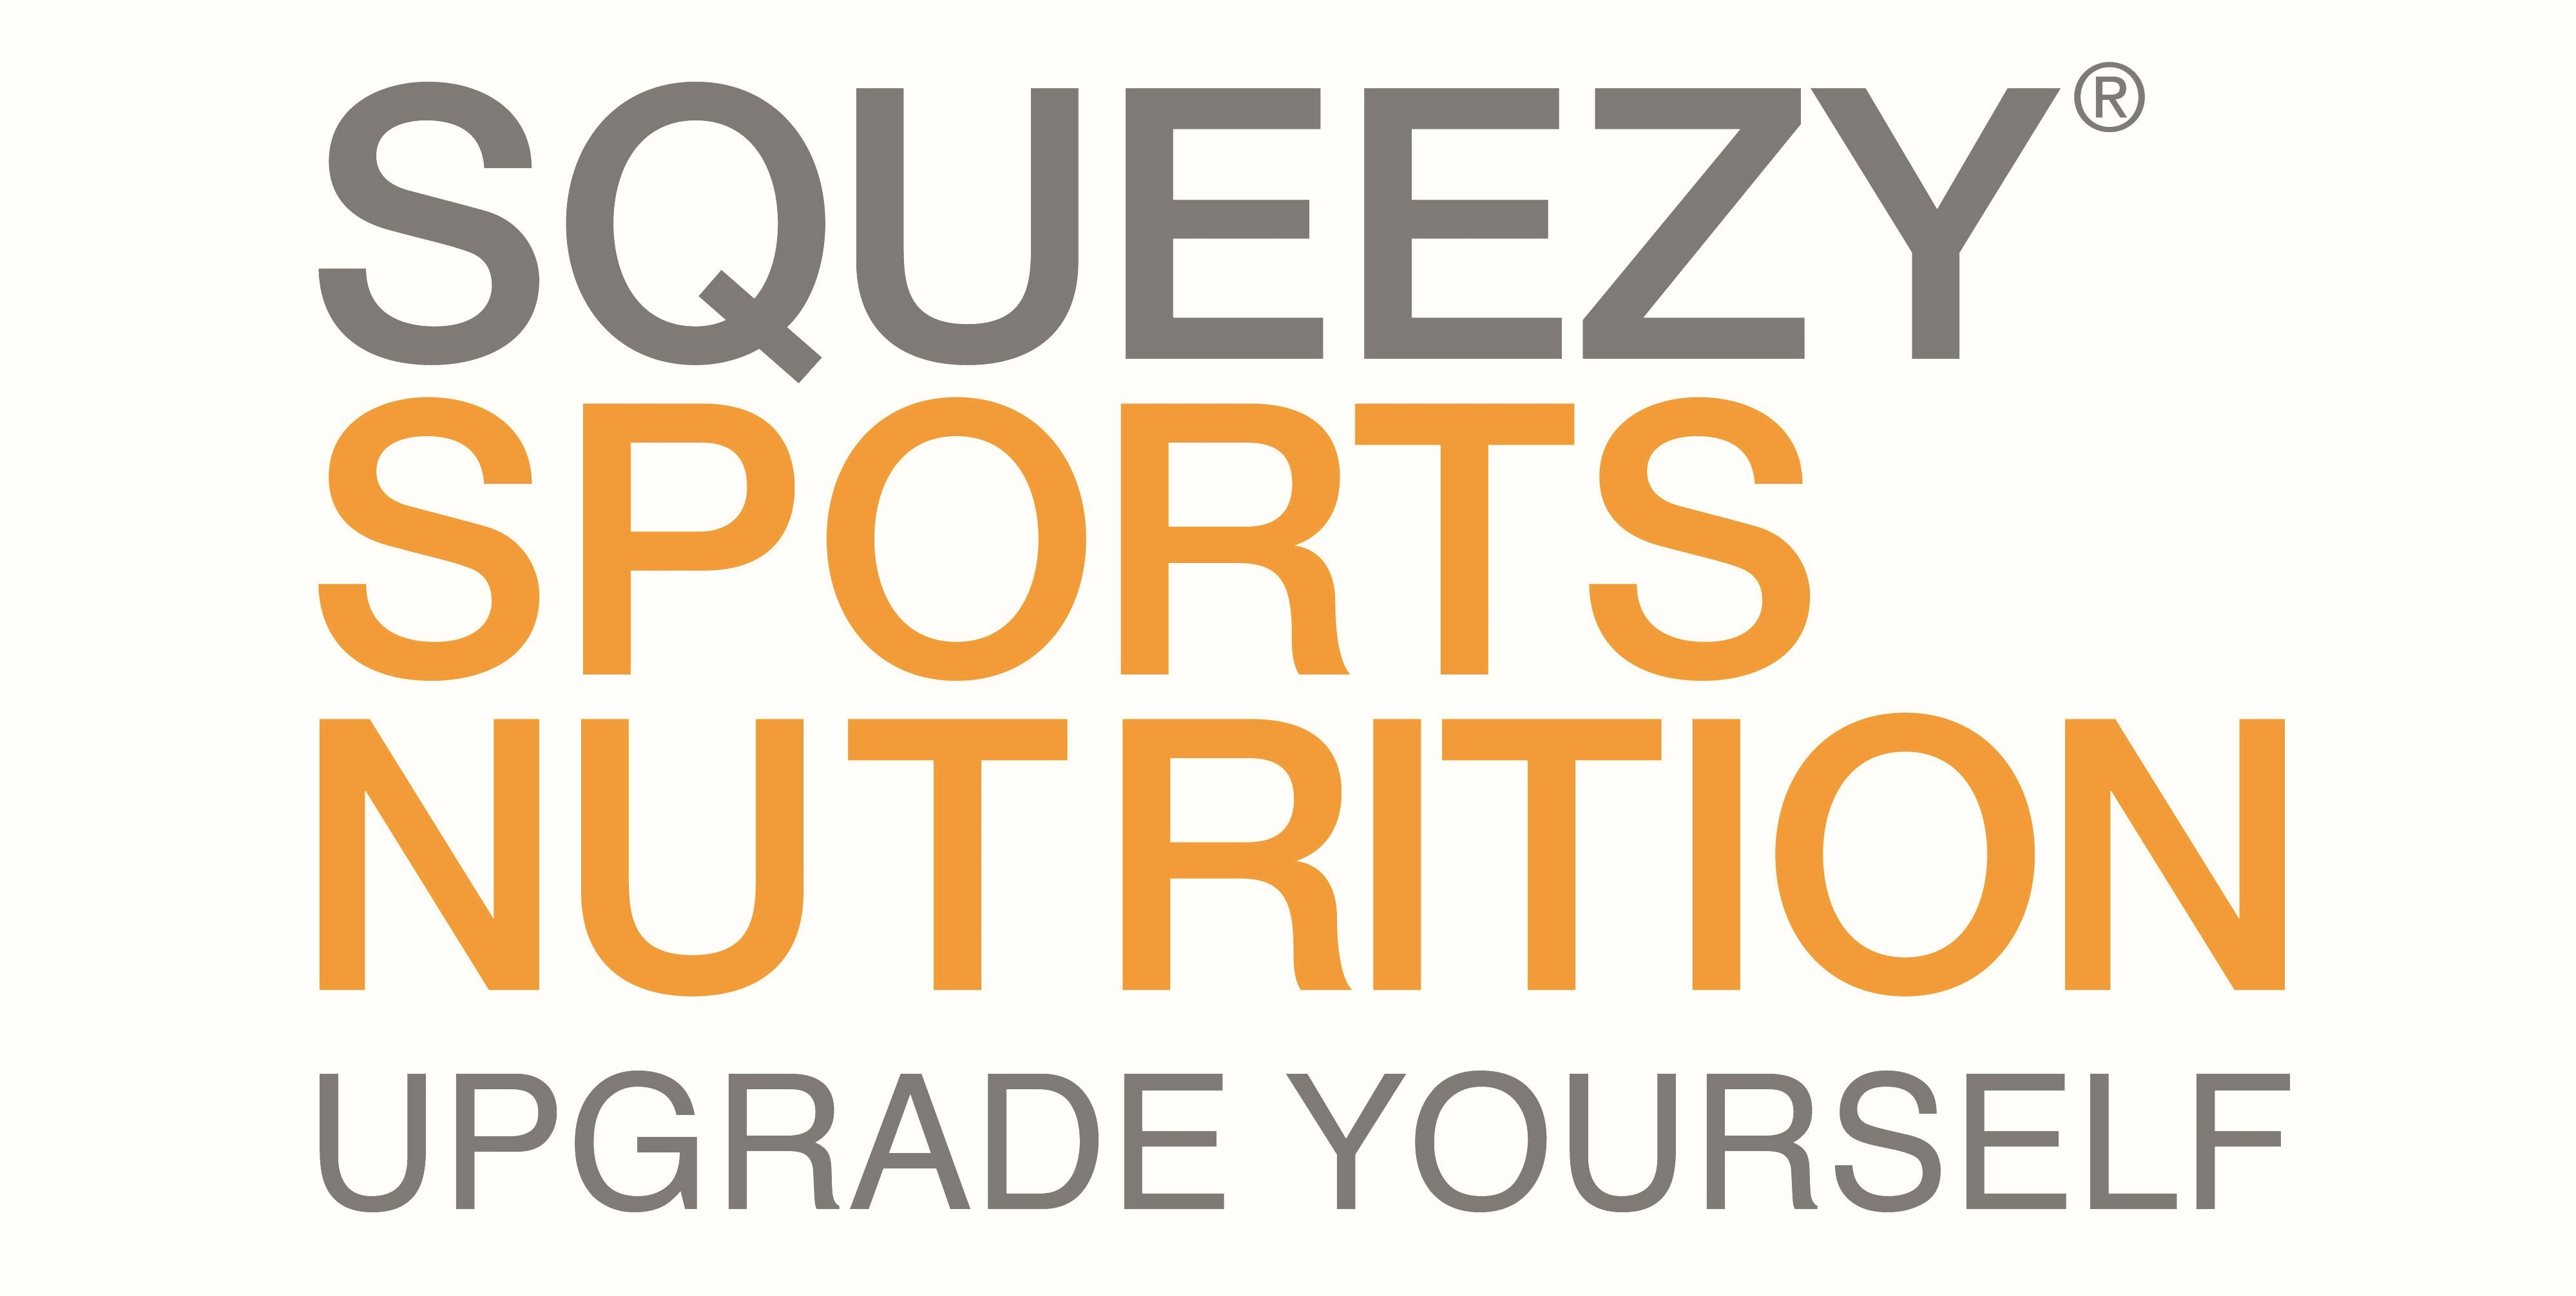 4. Squeezy Sports Nutrition GmbH